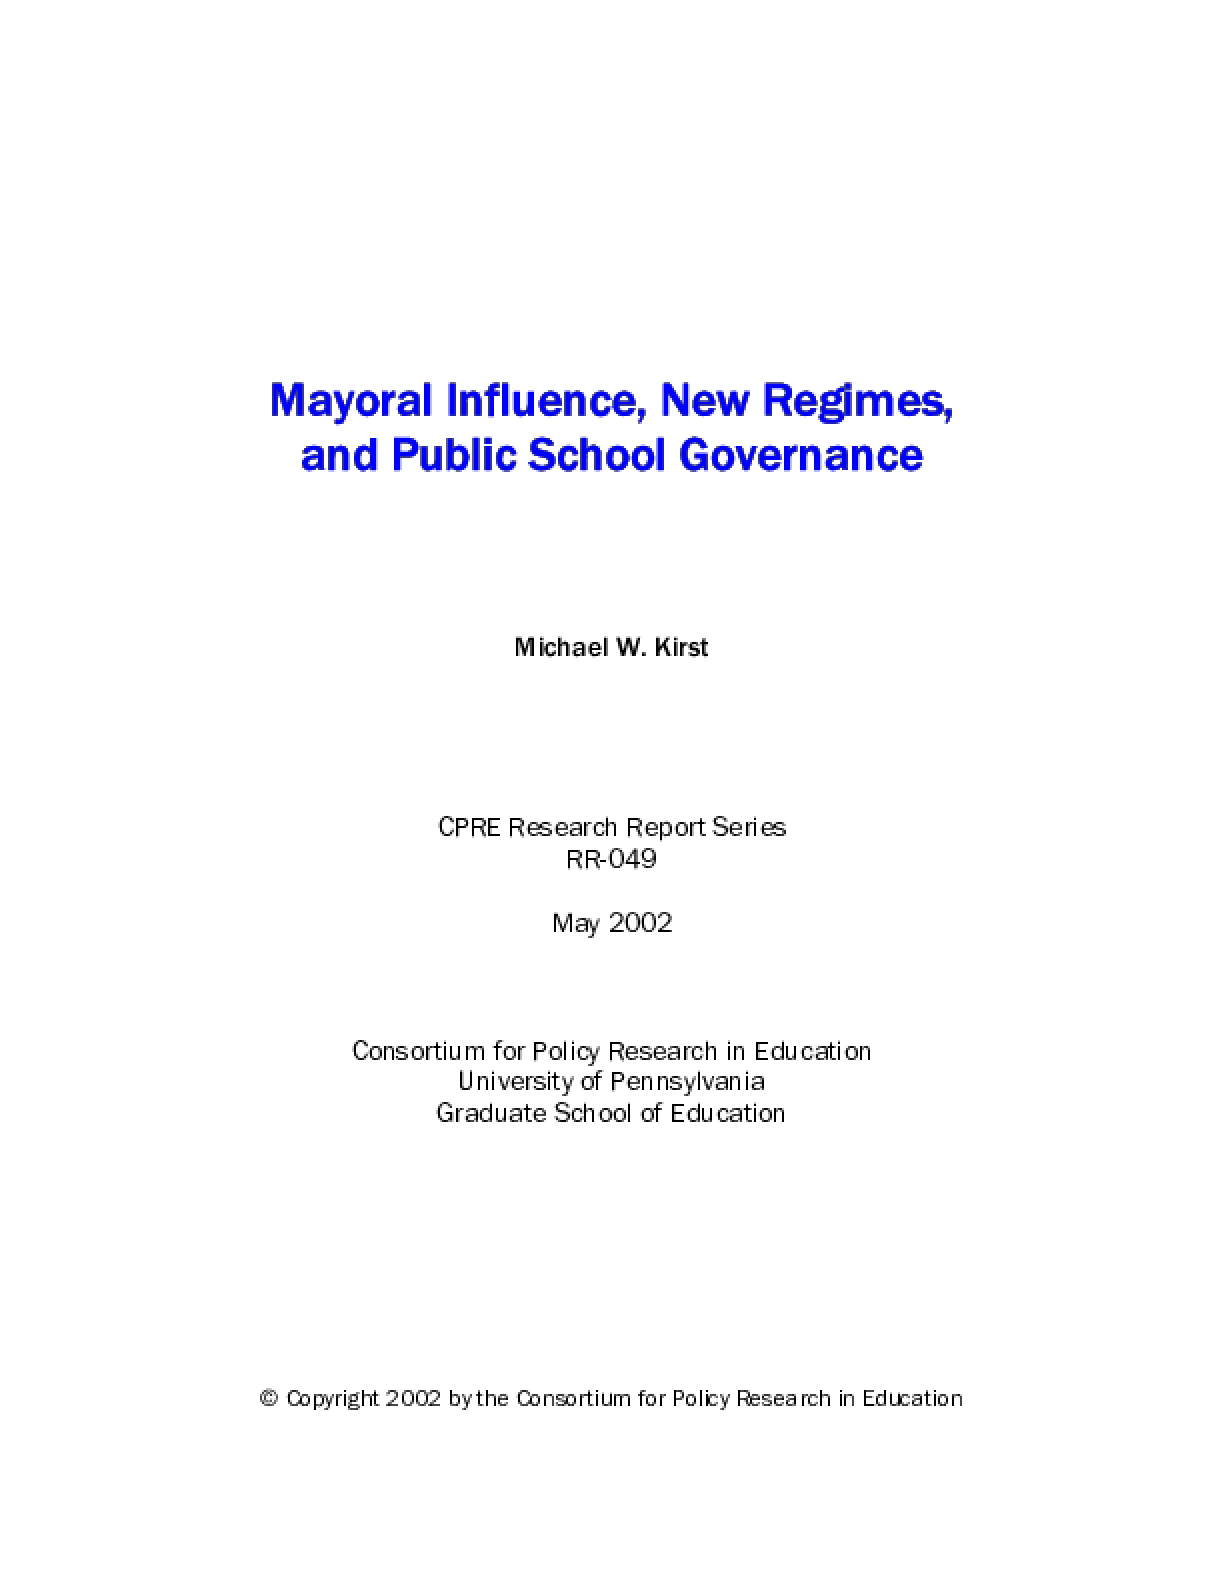 Mayoral Influences, New Regimes, and Public School Governance